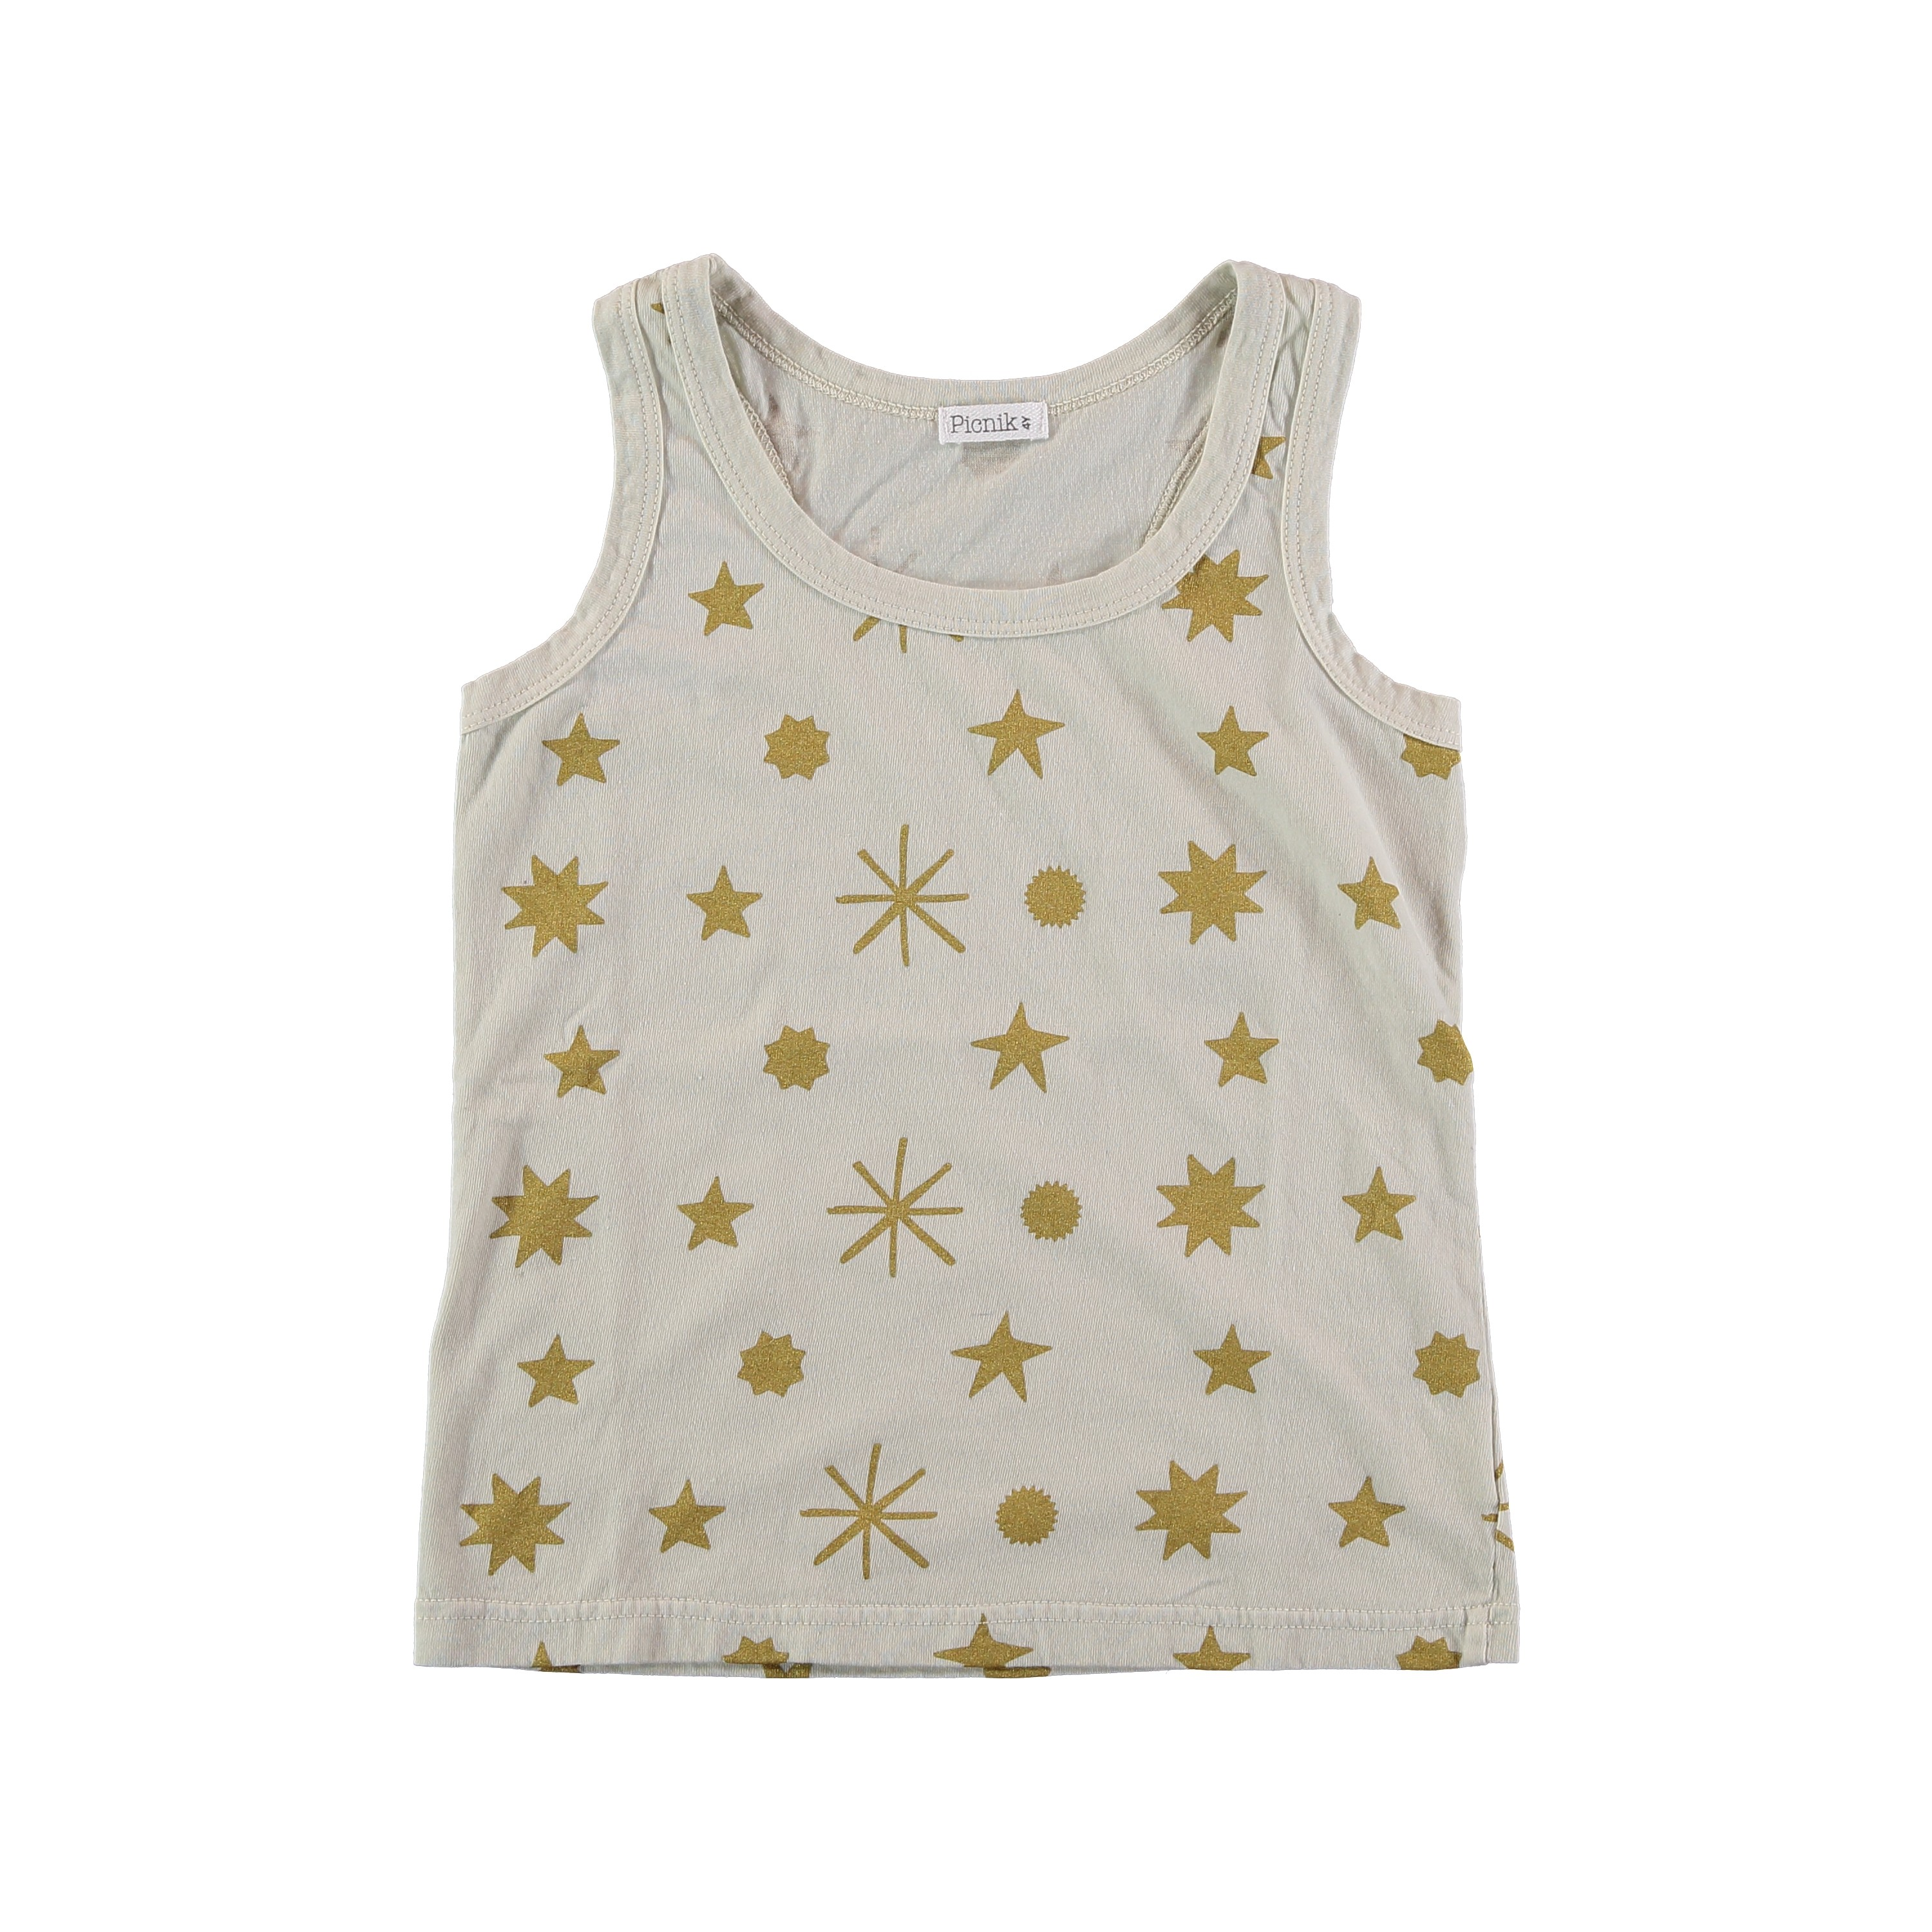 f32d3d6449a2 Tank Top - Golden stars - Alice on board